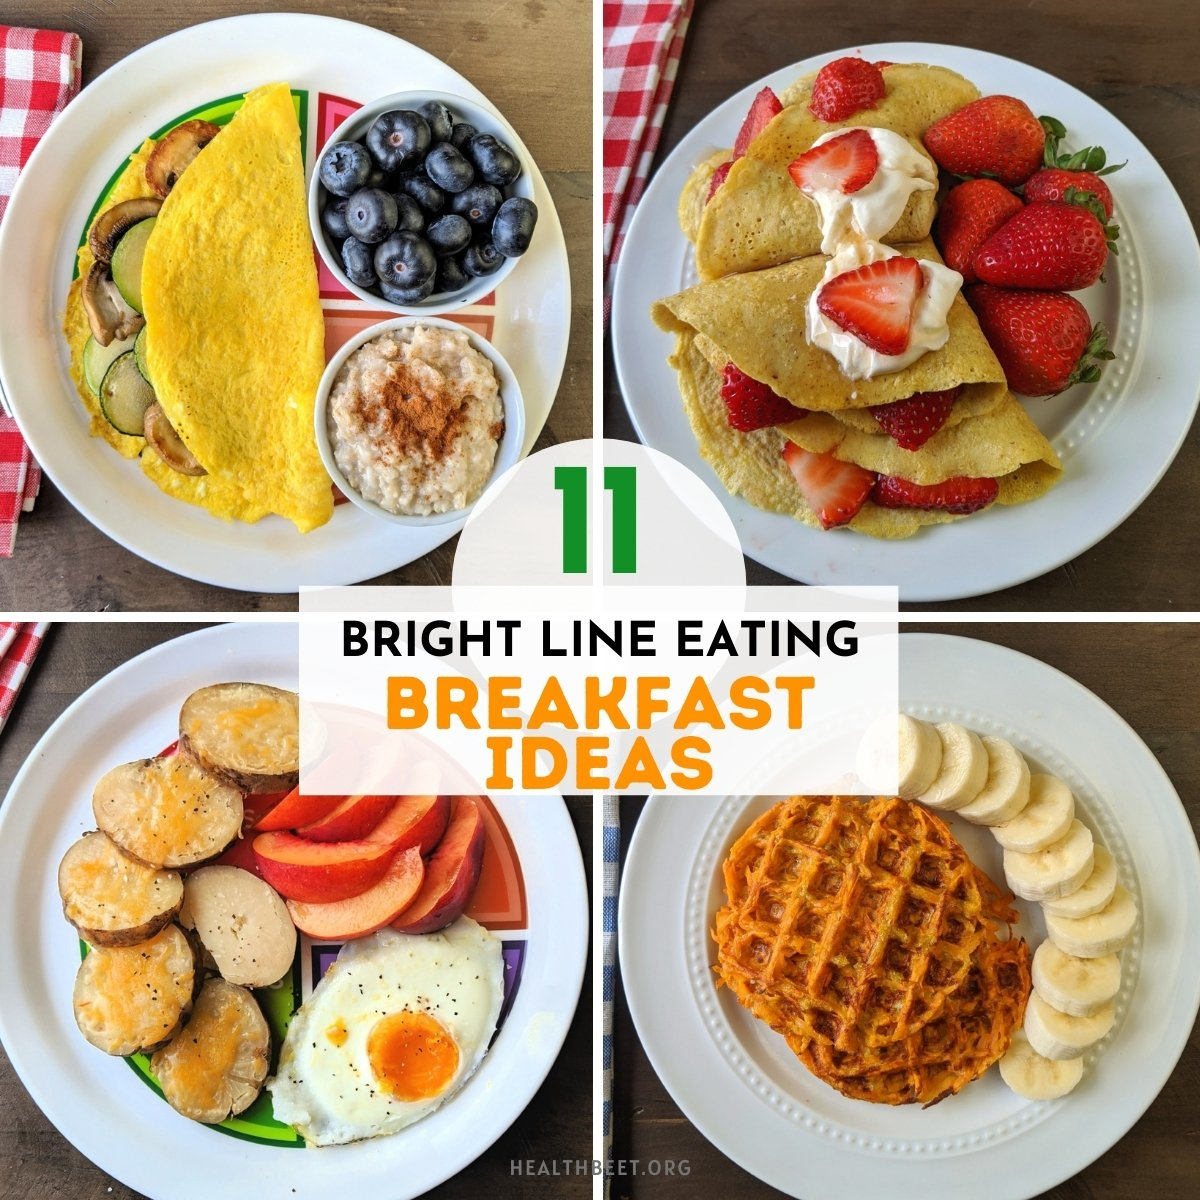 10 Bright Line Eating Breakfast Recipes and Meal ideas - Health Beet